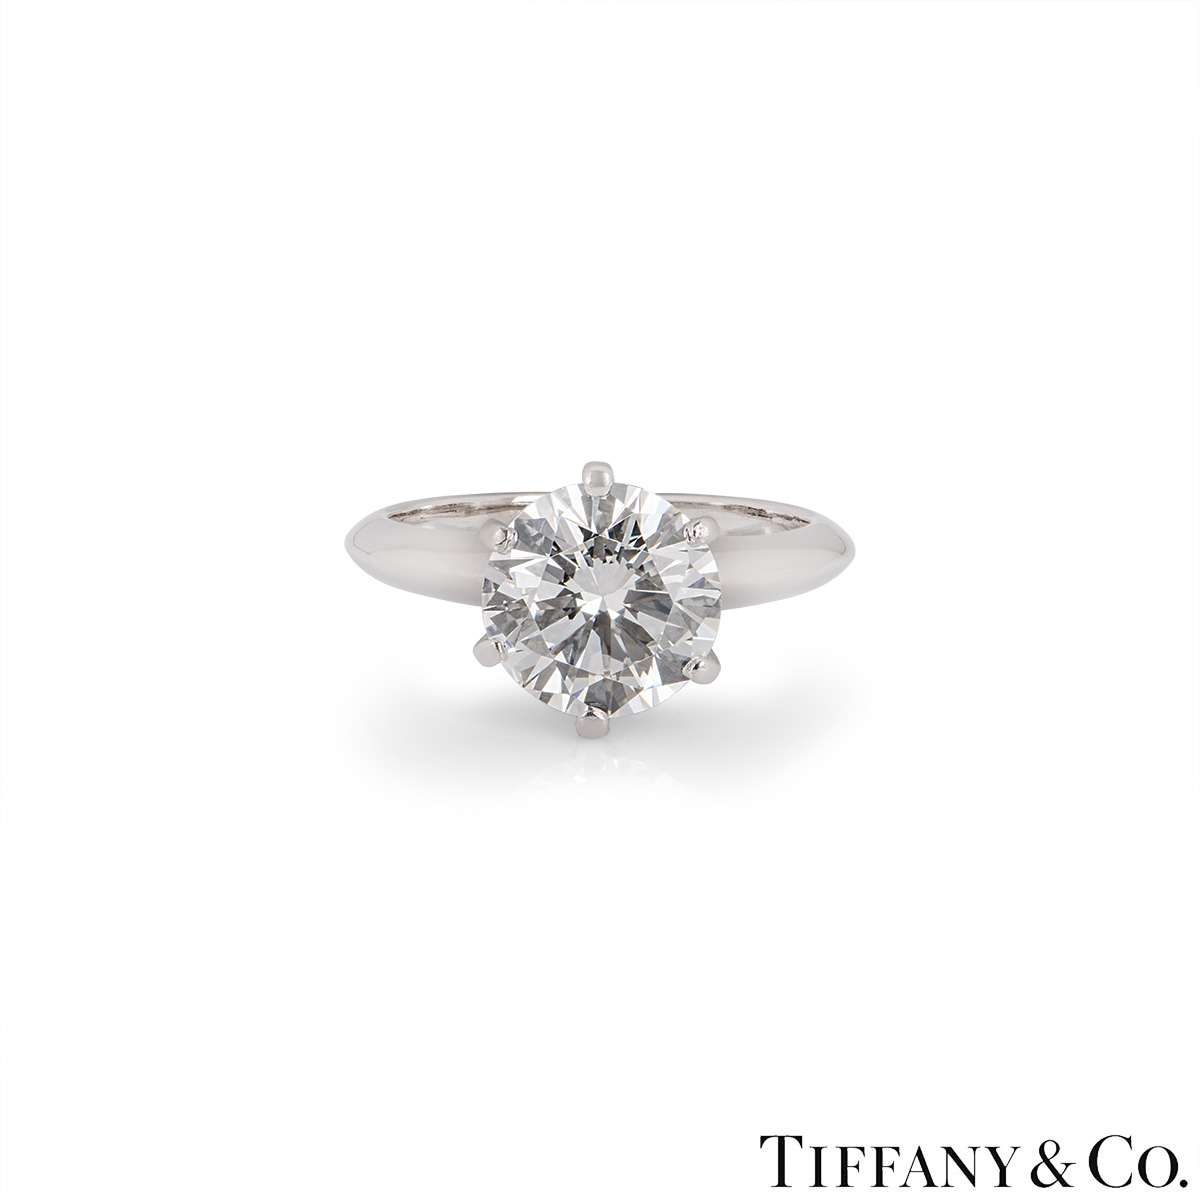 Tiffany & Co. Round Brilliant Cut Diamond Ring 2.35ct I/VVS2